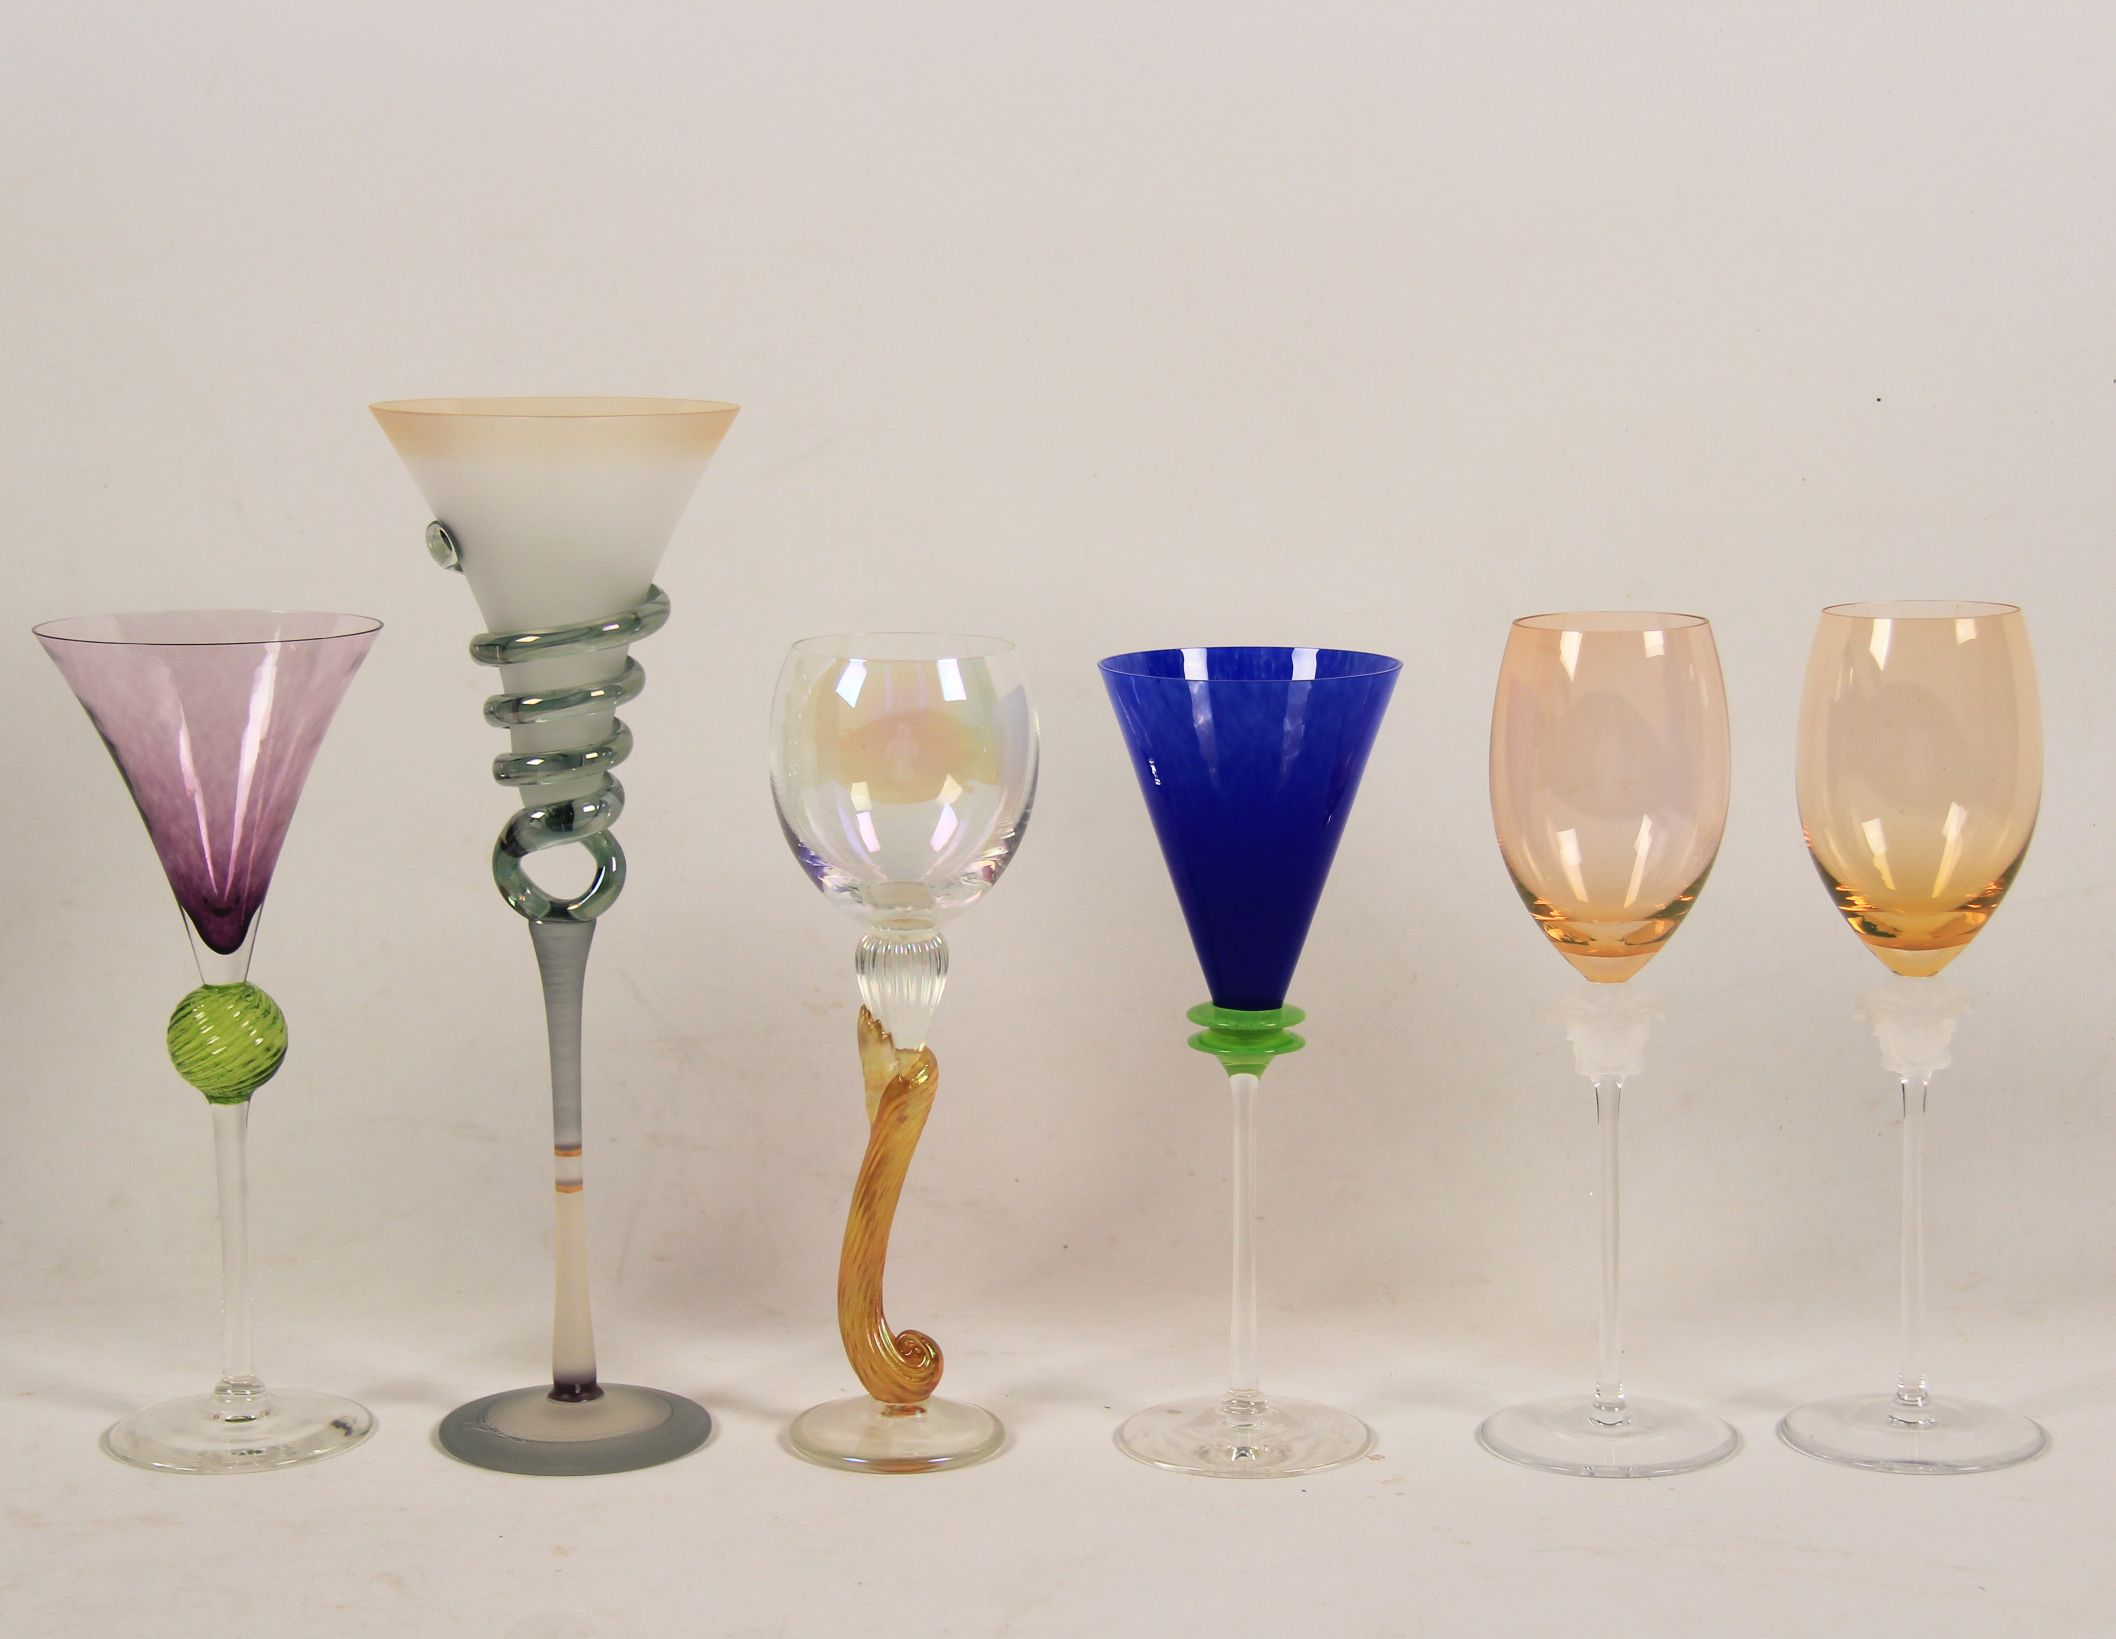 2148504b1270 MISCELLANEOUS LOT OF 6 LARGE GLASS GOBLETS INCLUDING A PAIR BY ROSENTHAL  COMMISSIONED FOR VERSACE